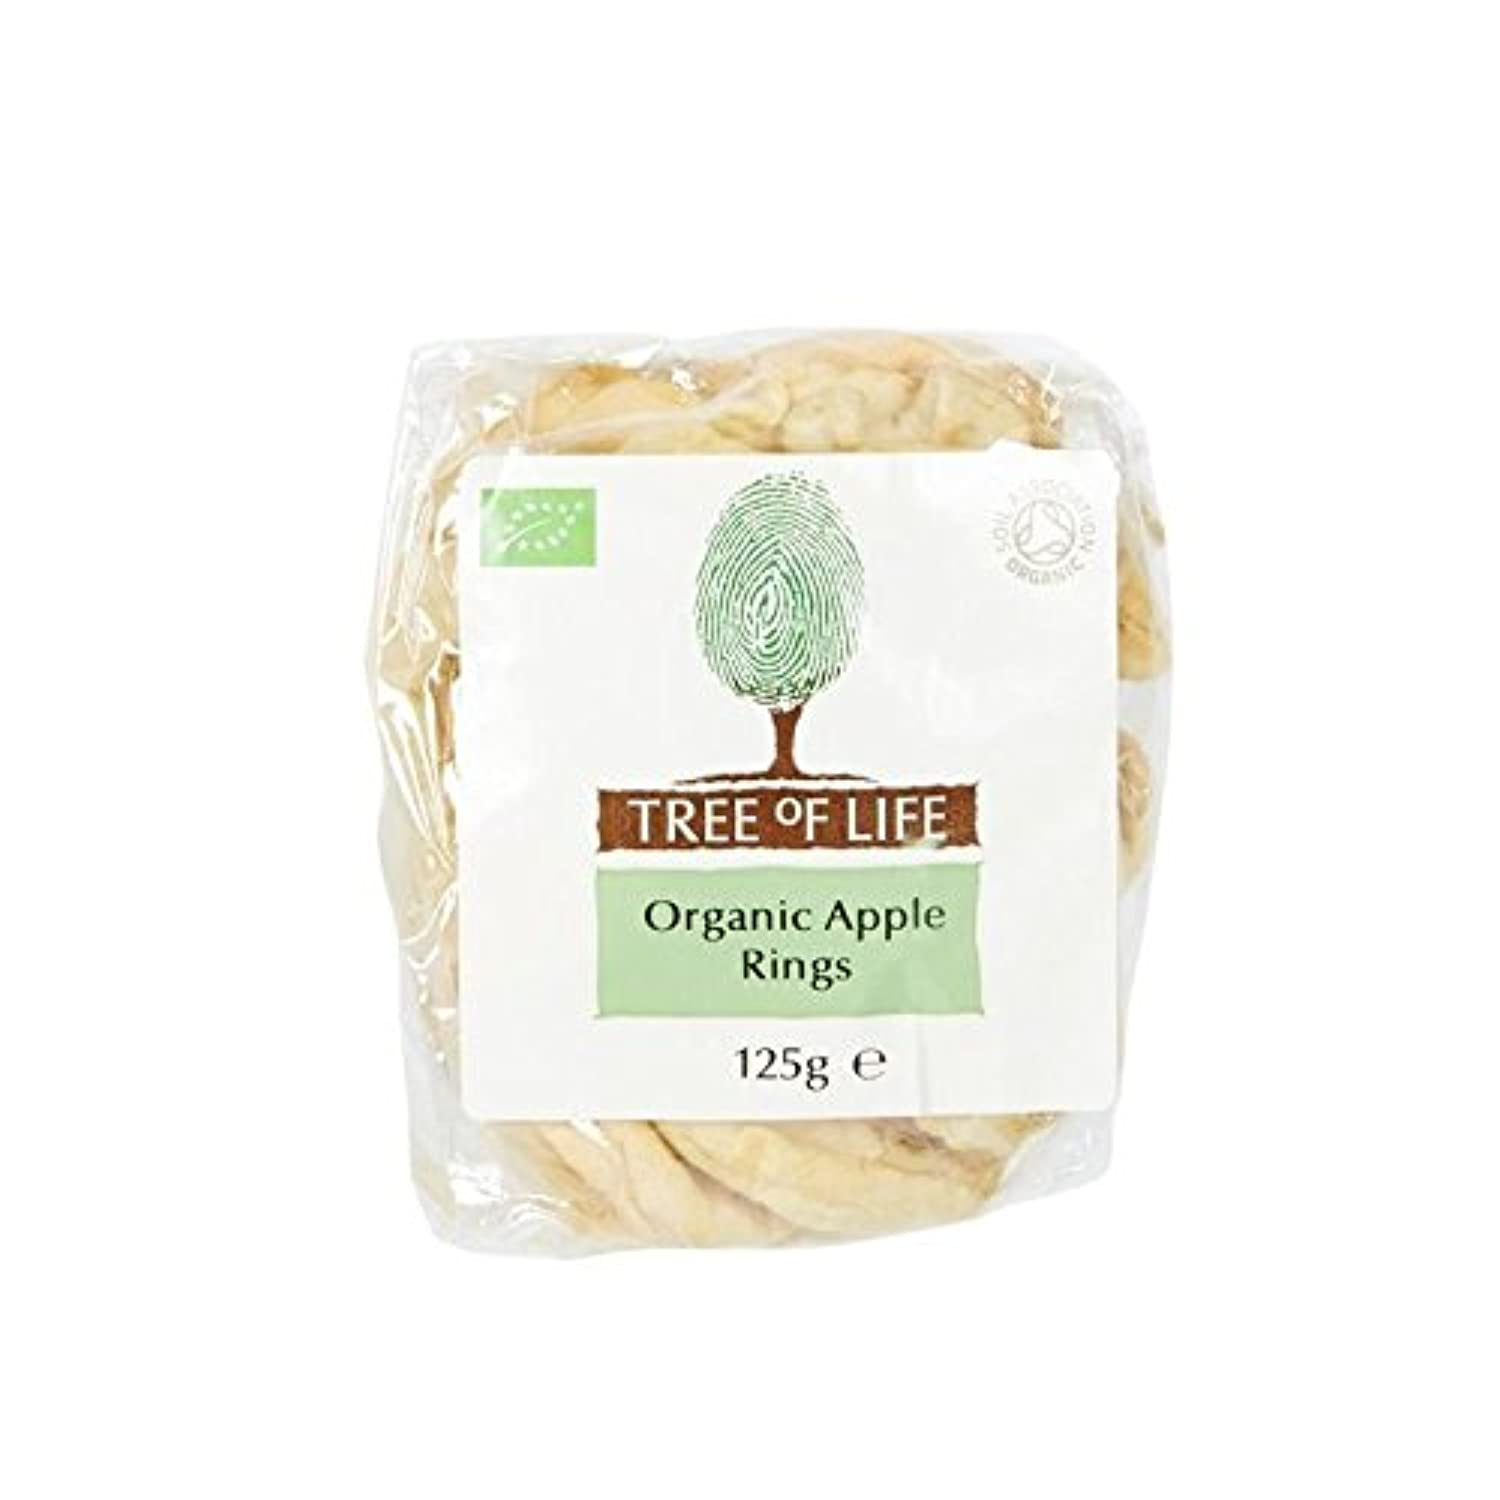 Tree of Life Organic Apple Rings 125g - Pack of 2